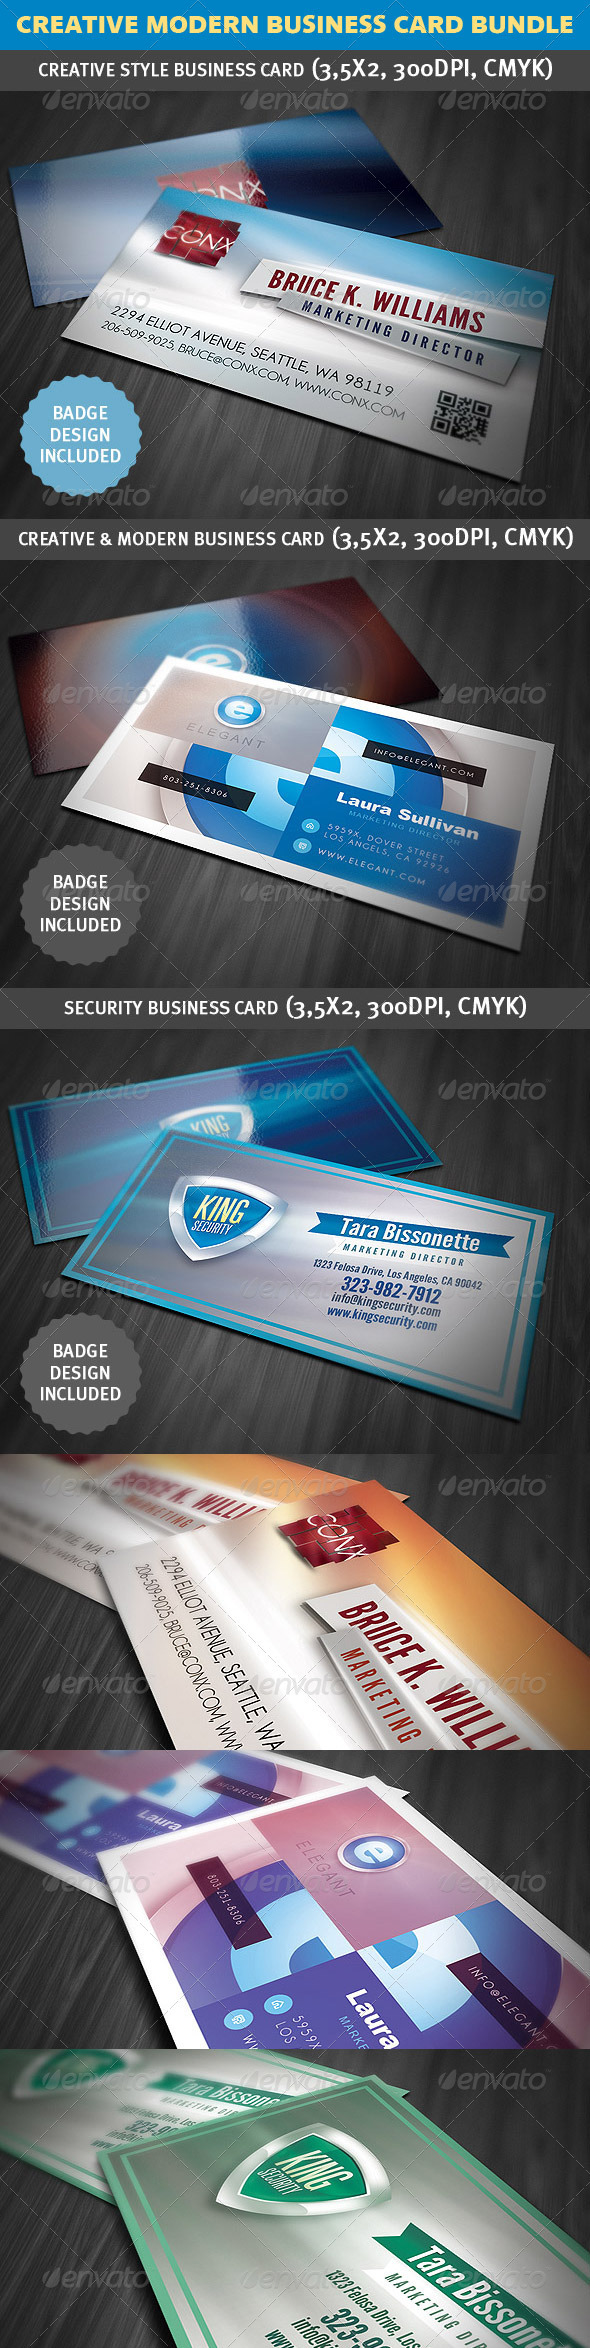 Creative Modern Business Card Bundle - Creative Business Cards